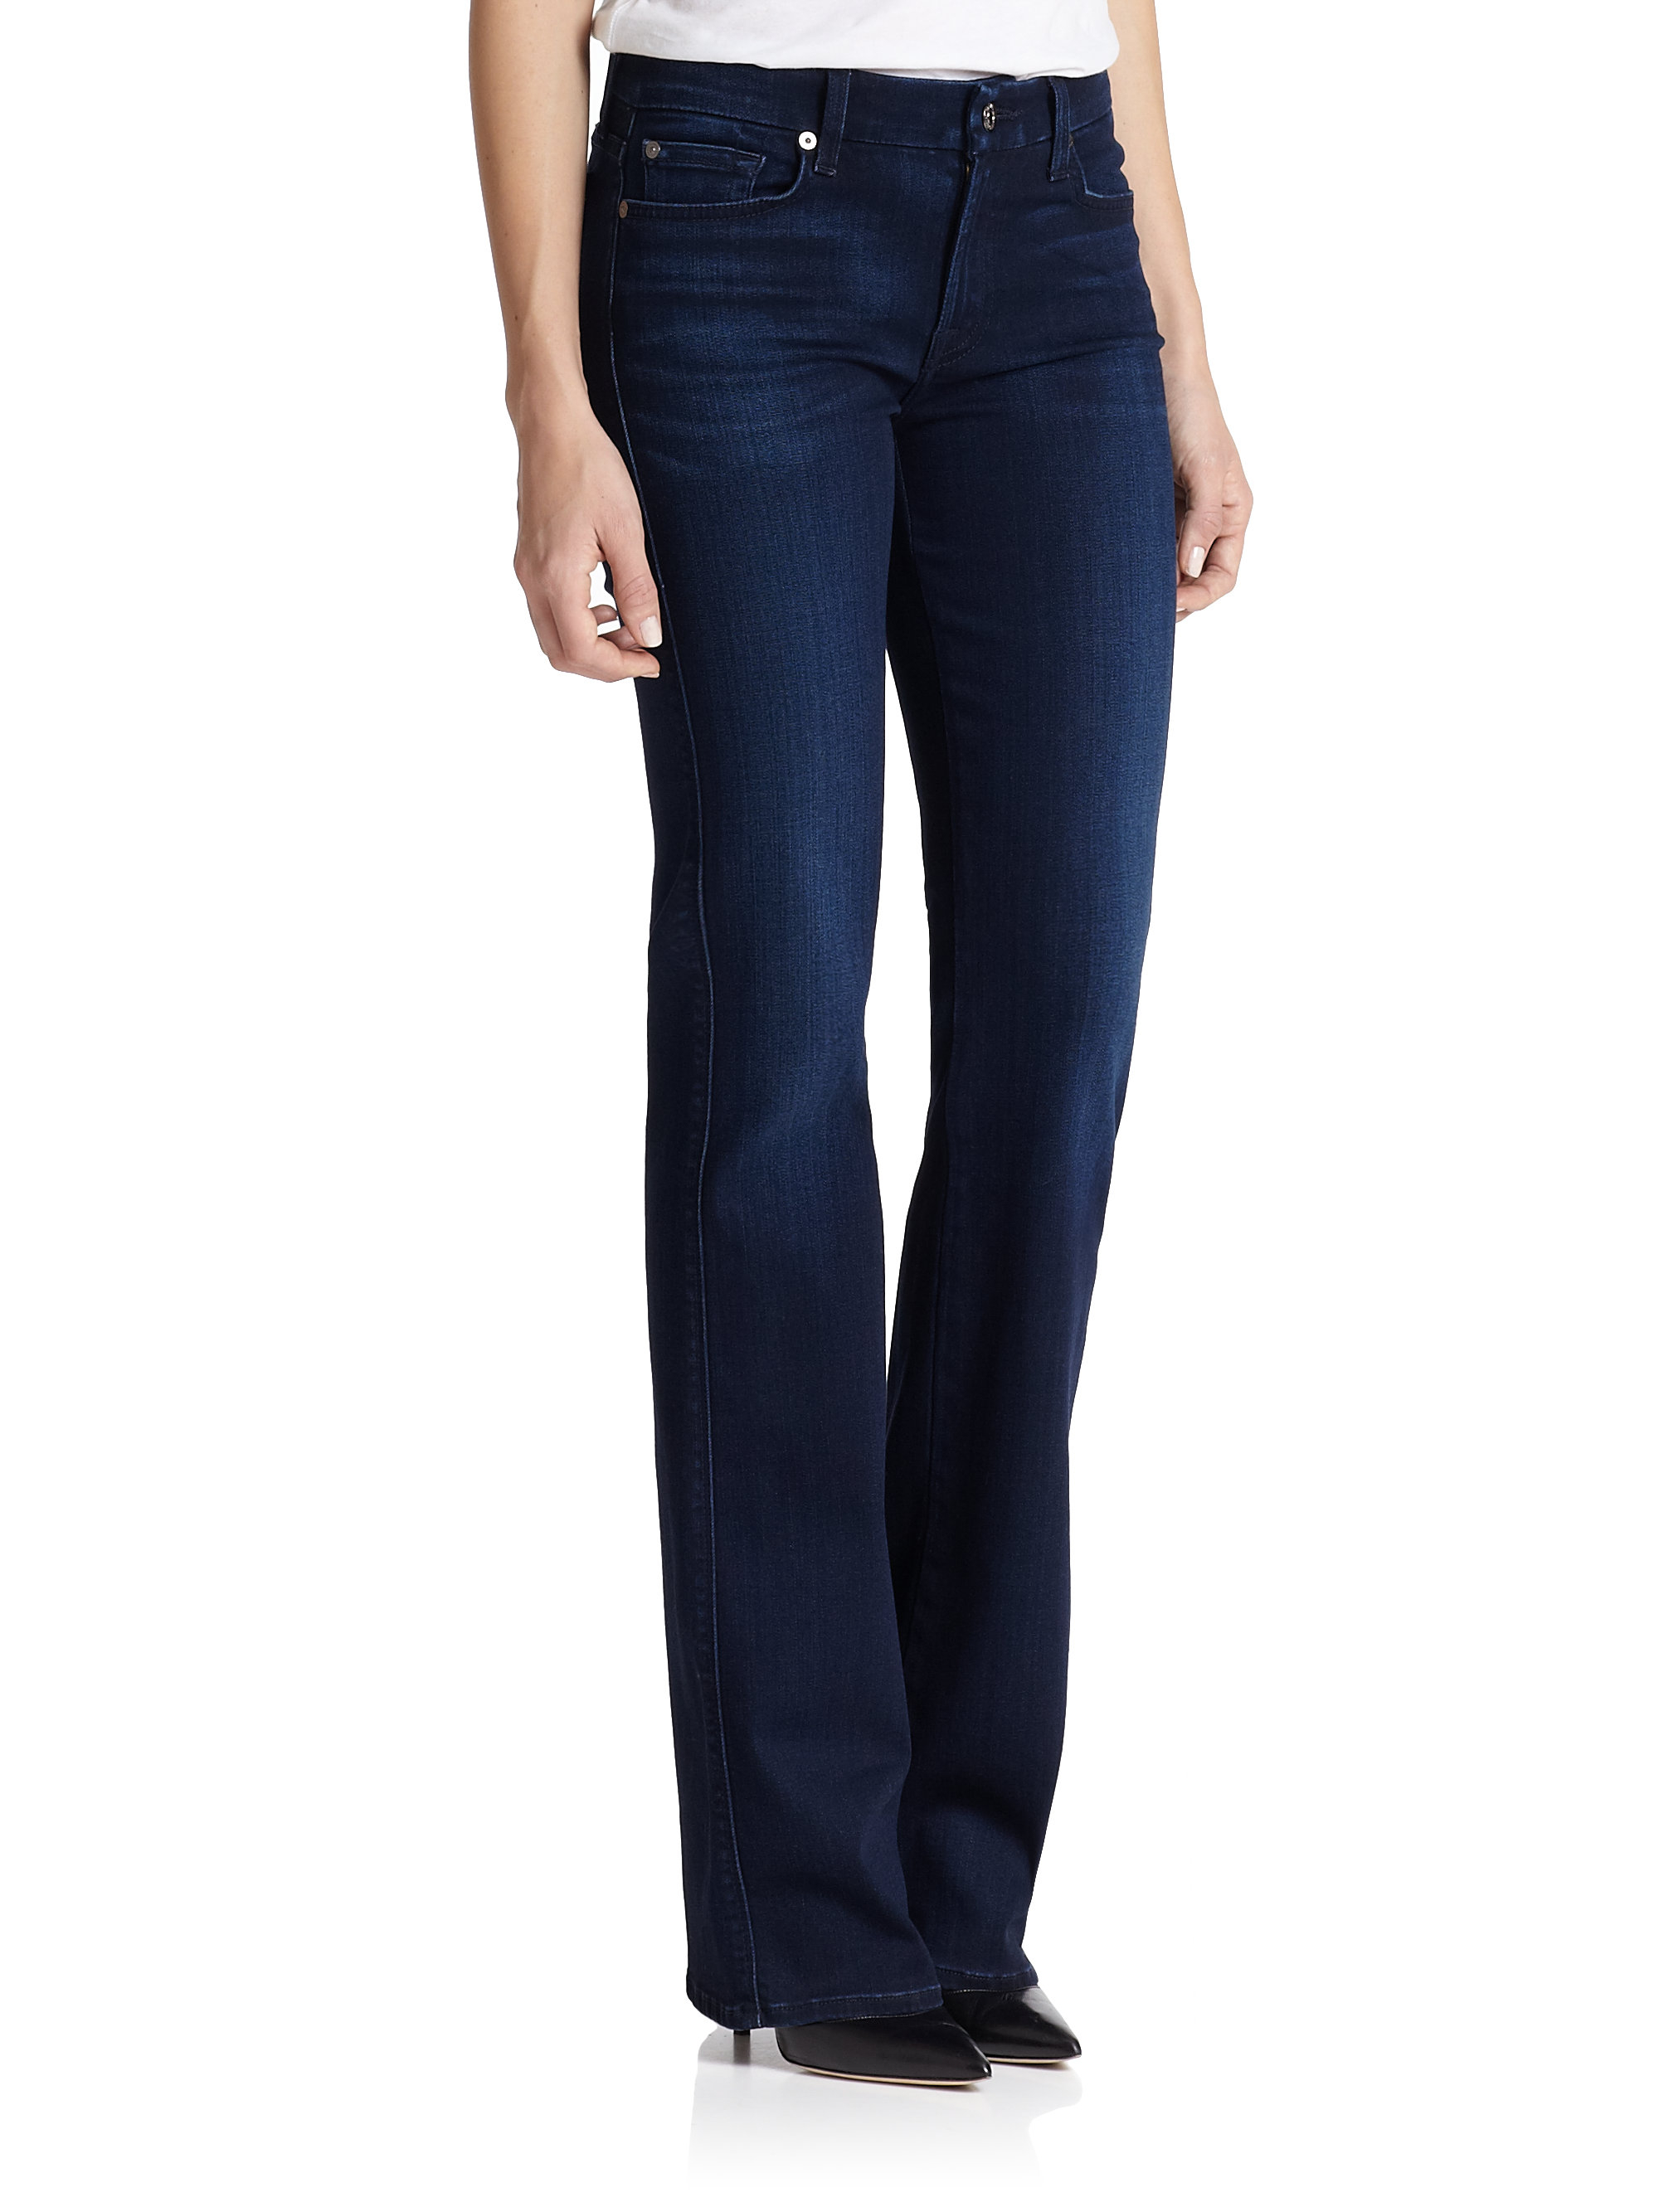 7 for all mankind kimmie bootcut jeans in blue lyst. Black Bedroom Furniture Sets. Home Design Ideas